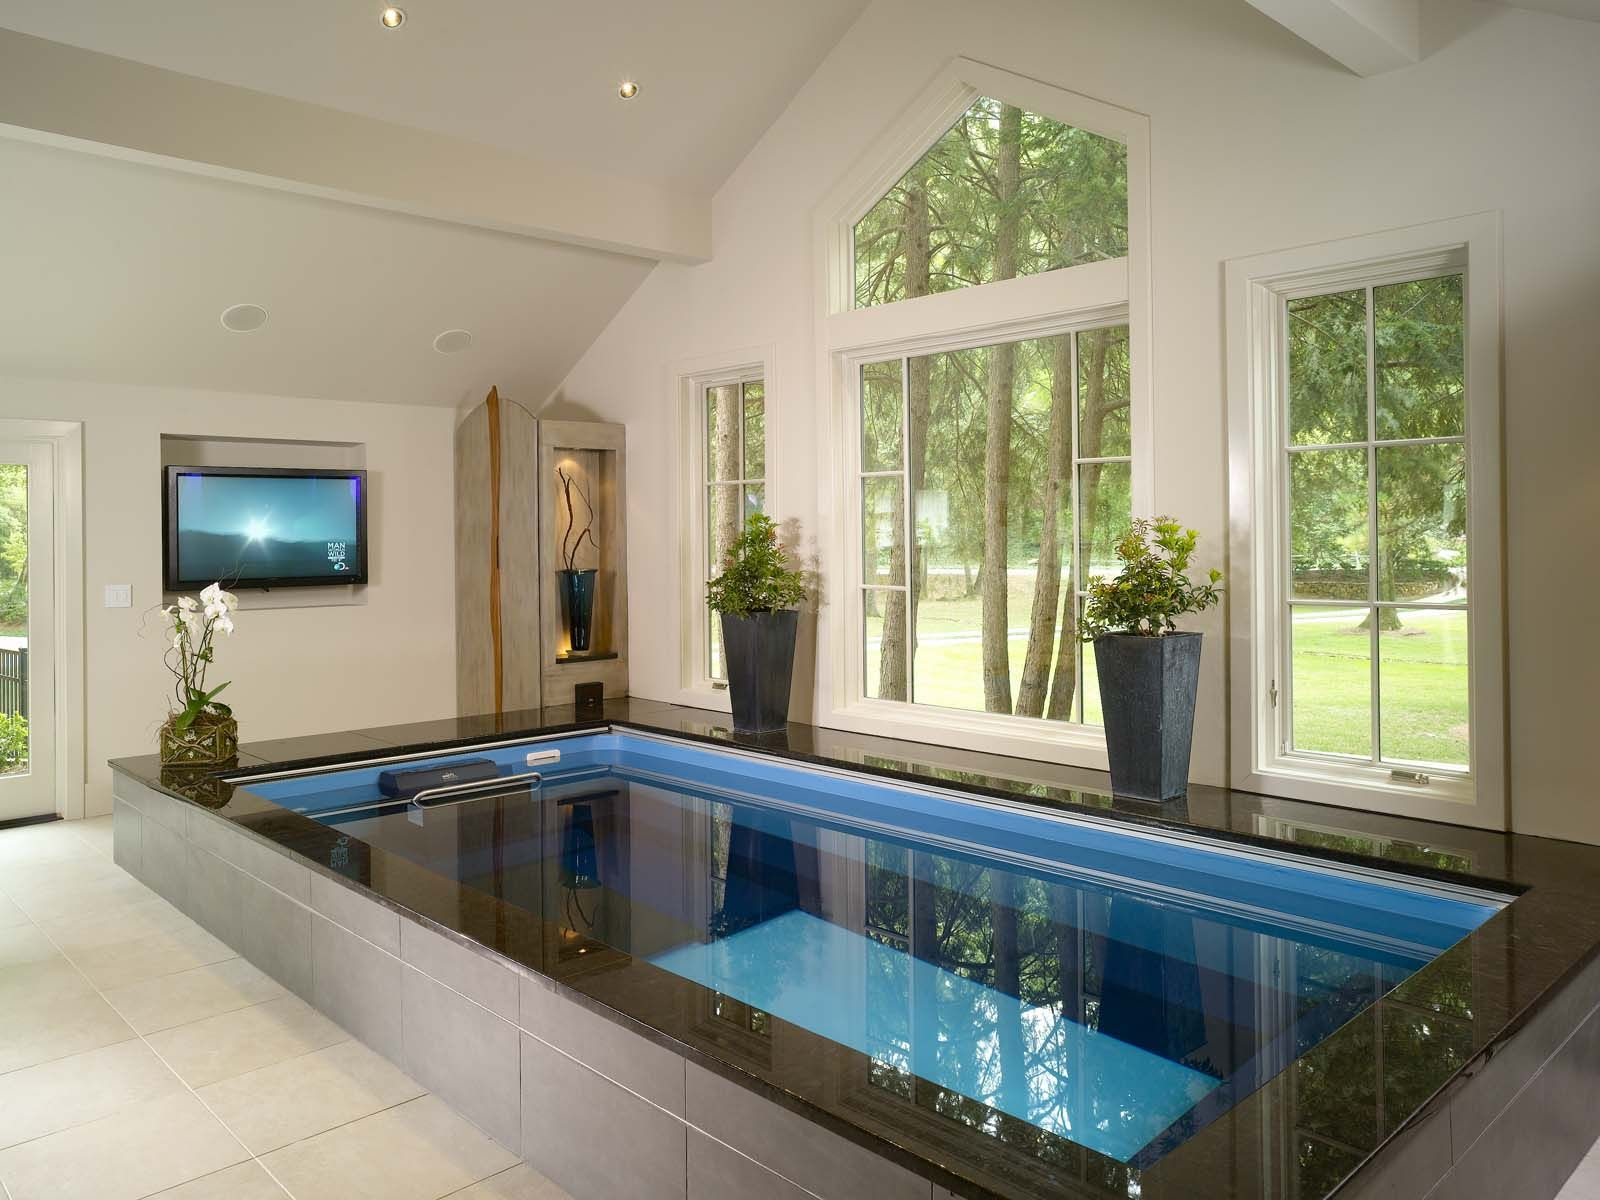 Lovely Luxury The Indoor Pool Spa Small Indoor Pool Indoor Pool House Indoor Swimming Pool Design